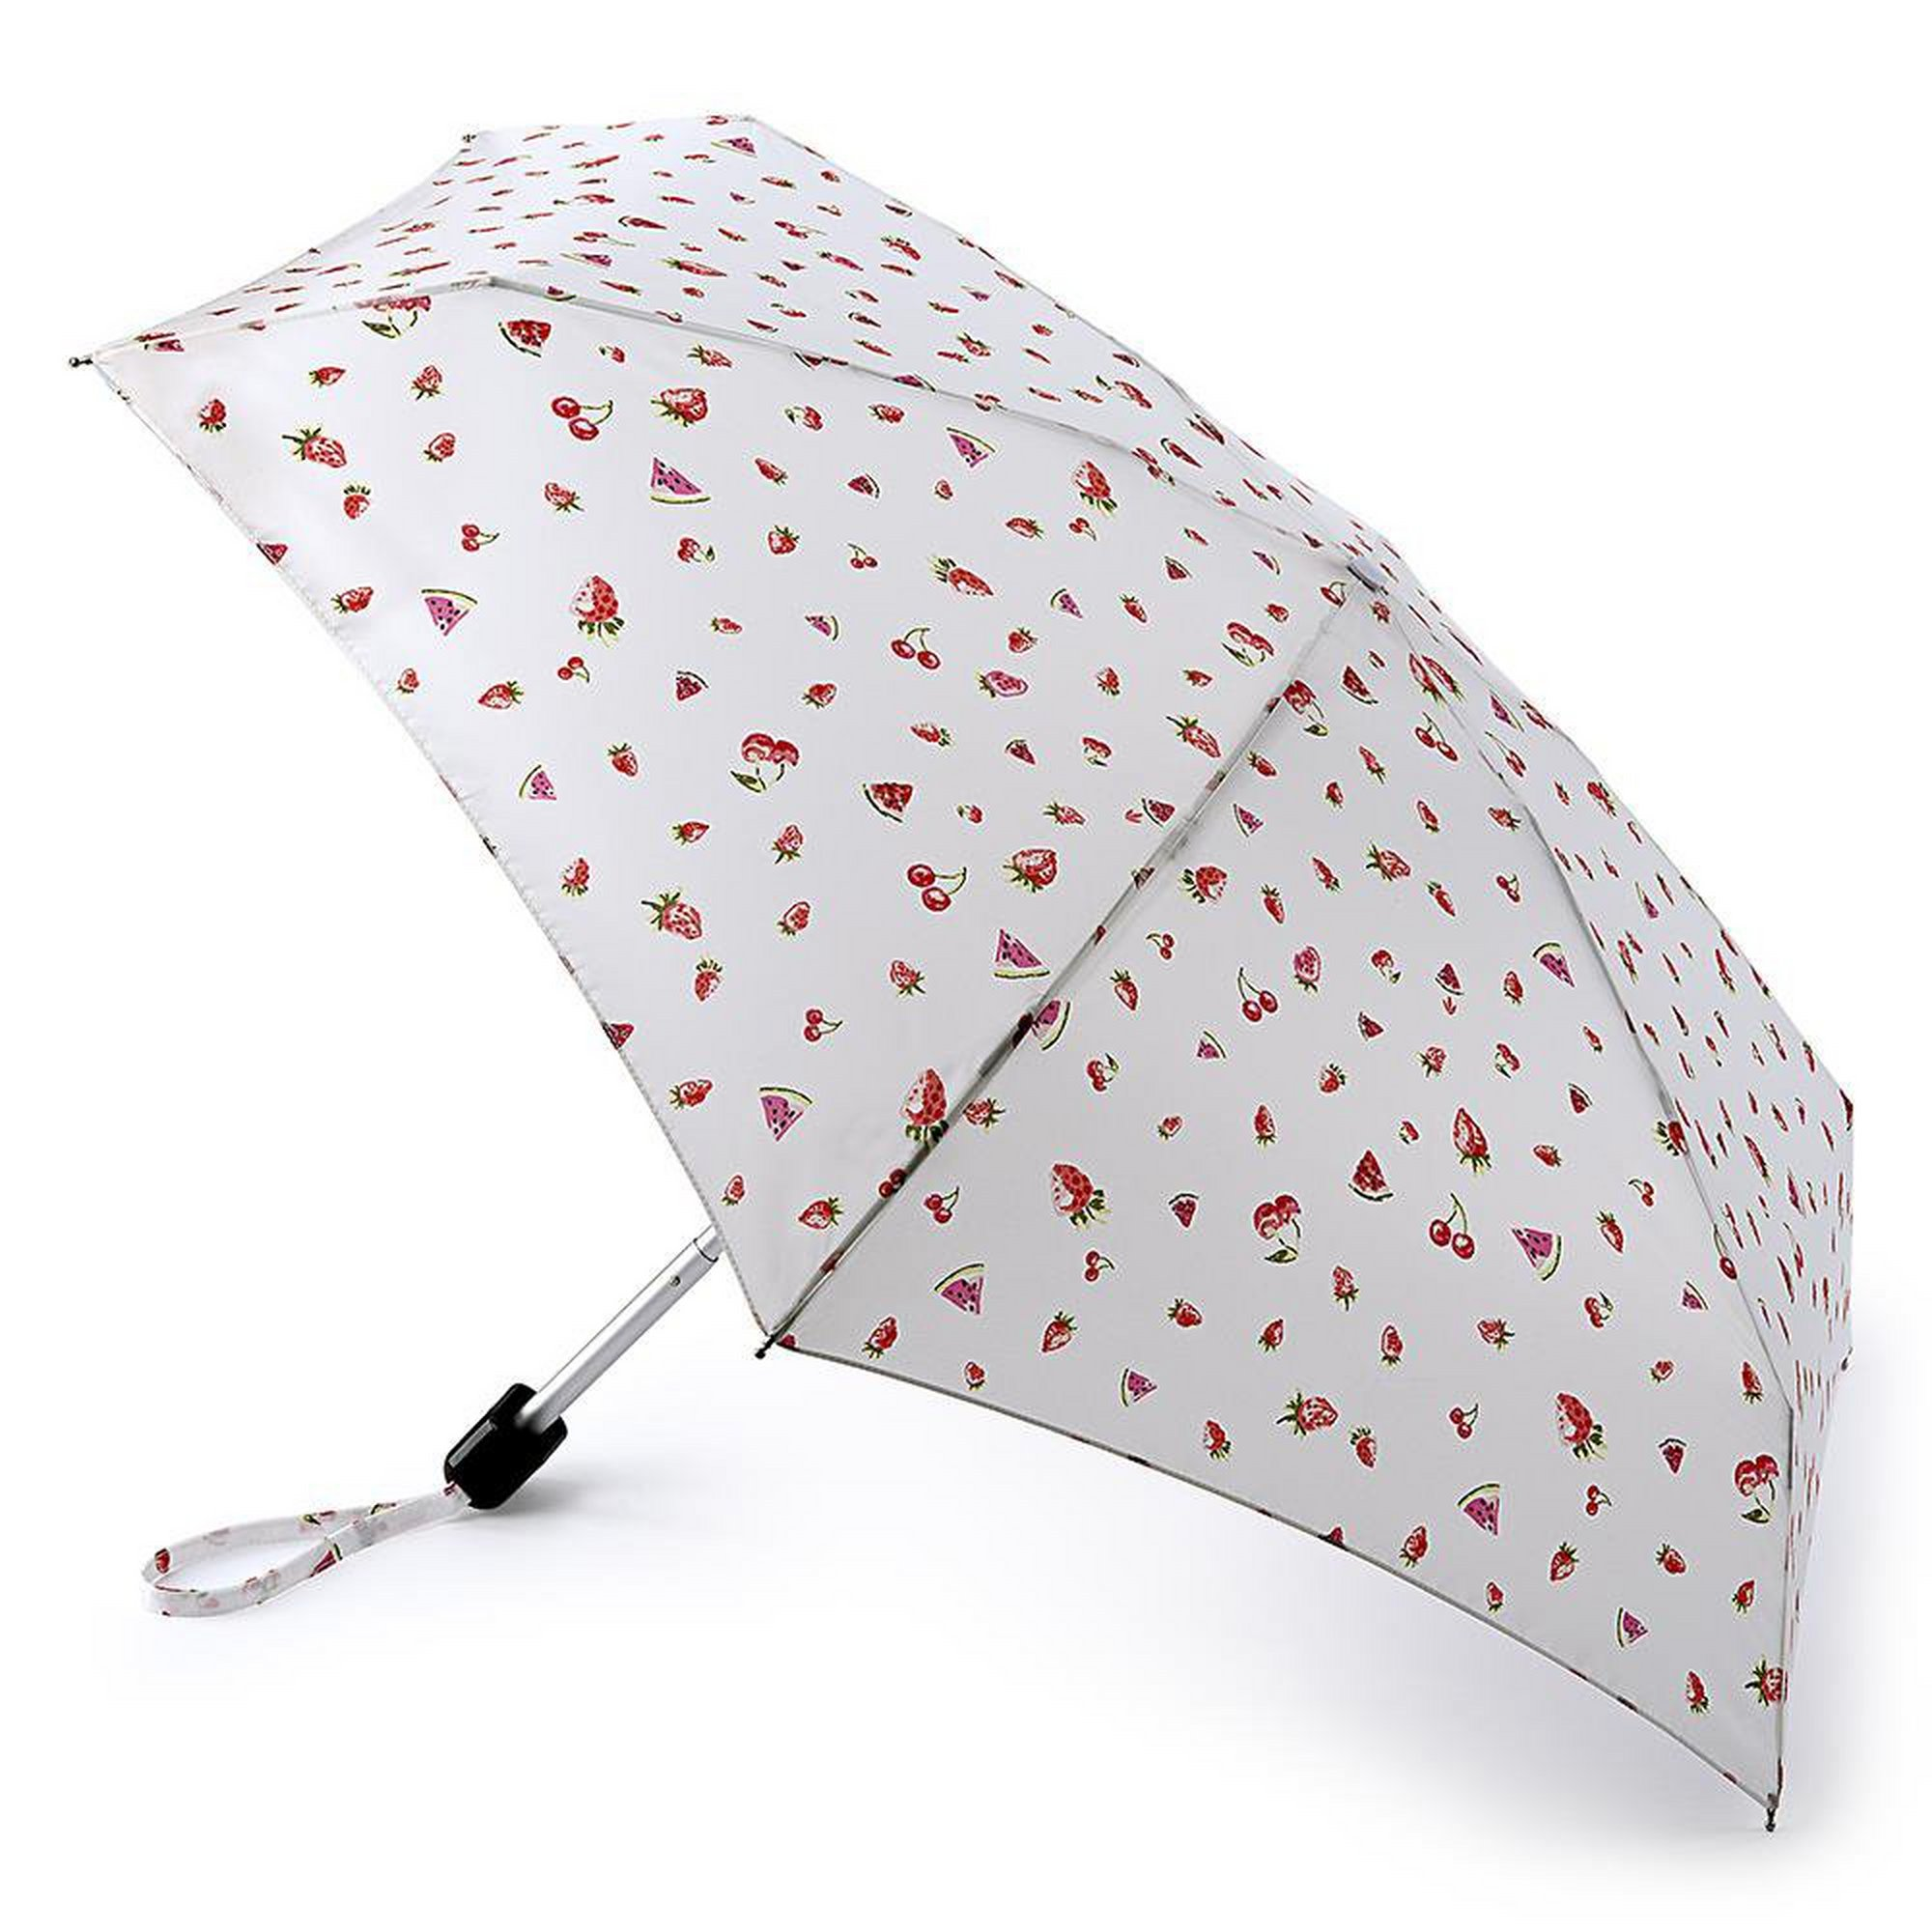 Image of Fulton Juicy Rain Tiny-2 Umbrella